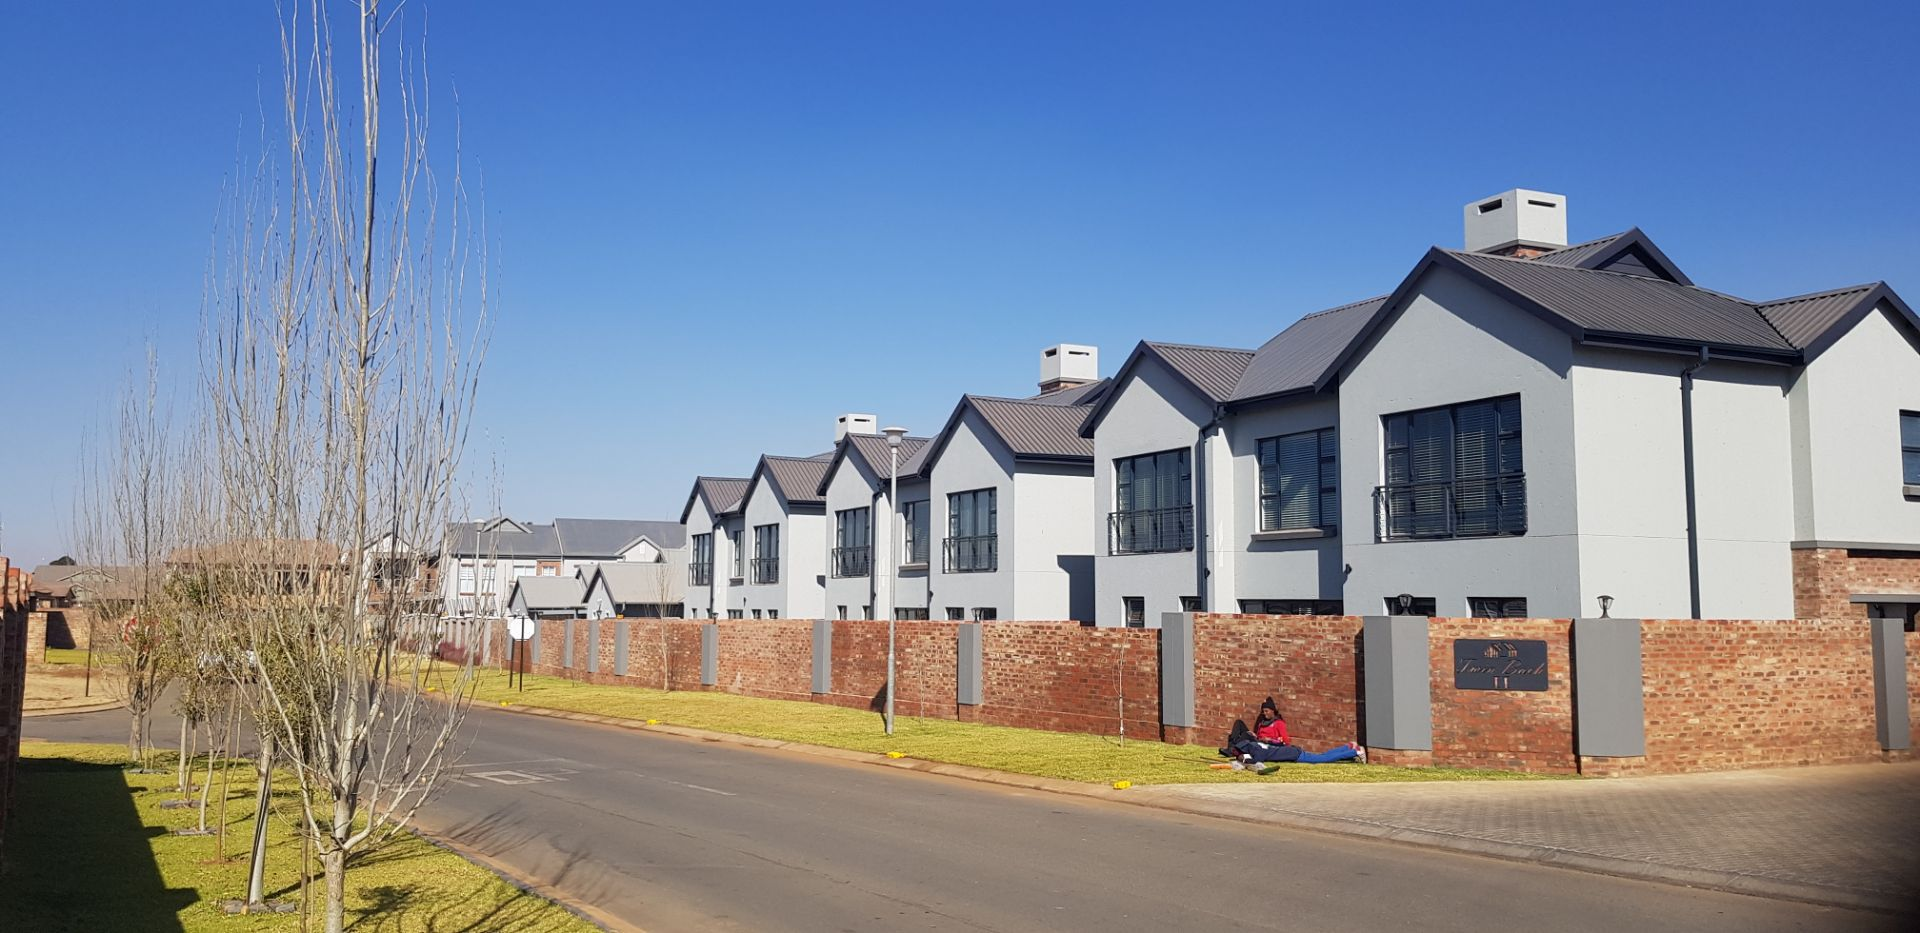 House in Lifestyle Estate - 20190712_112633.jpg